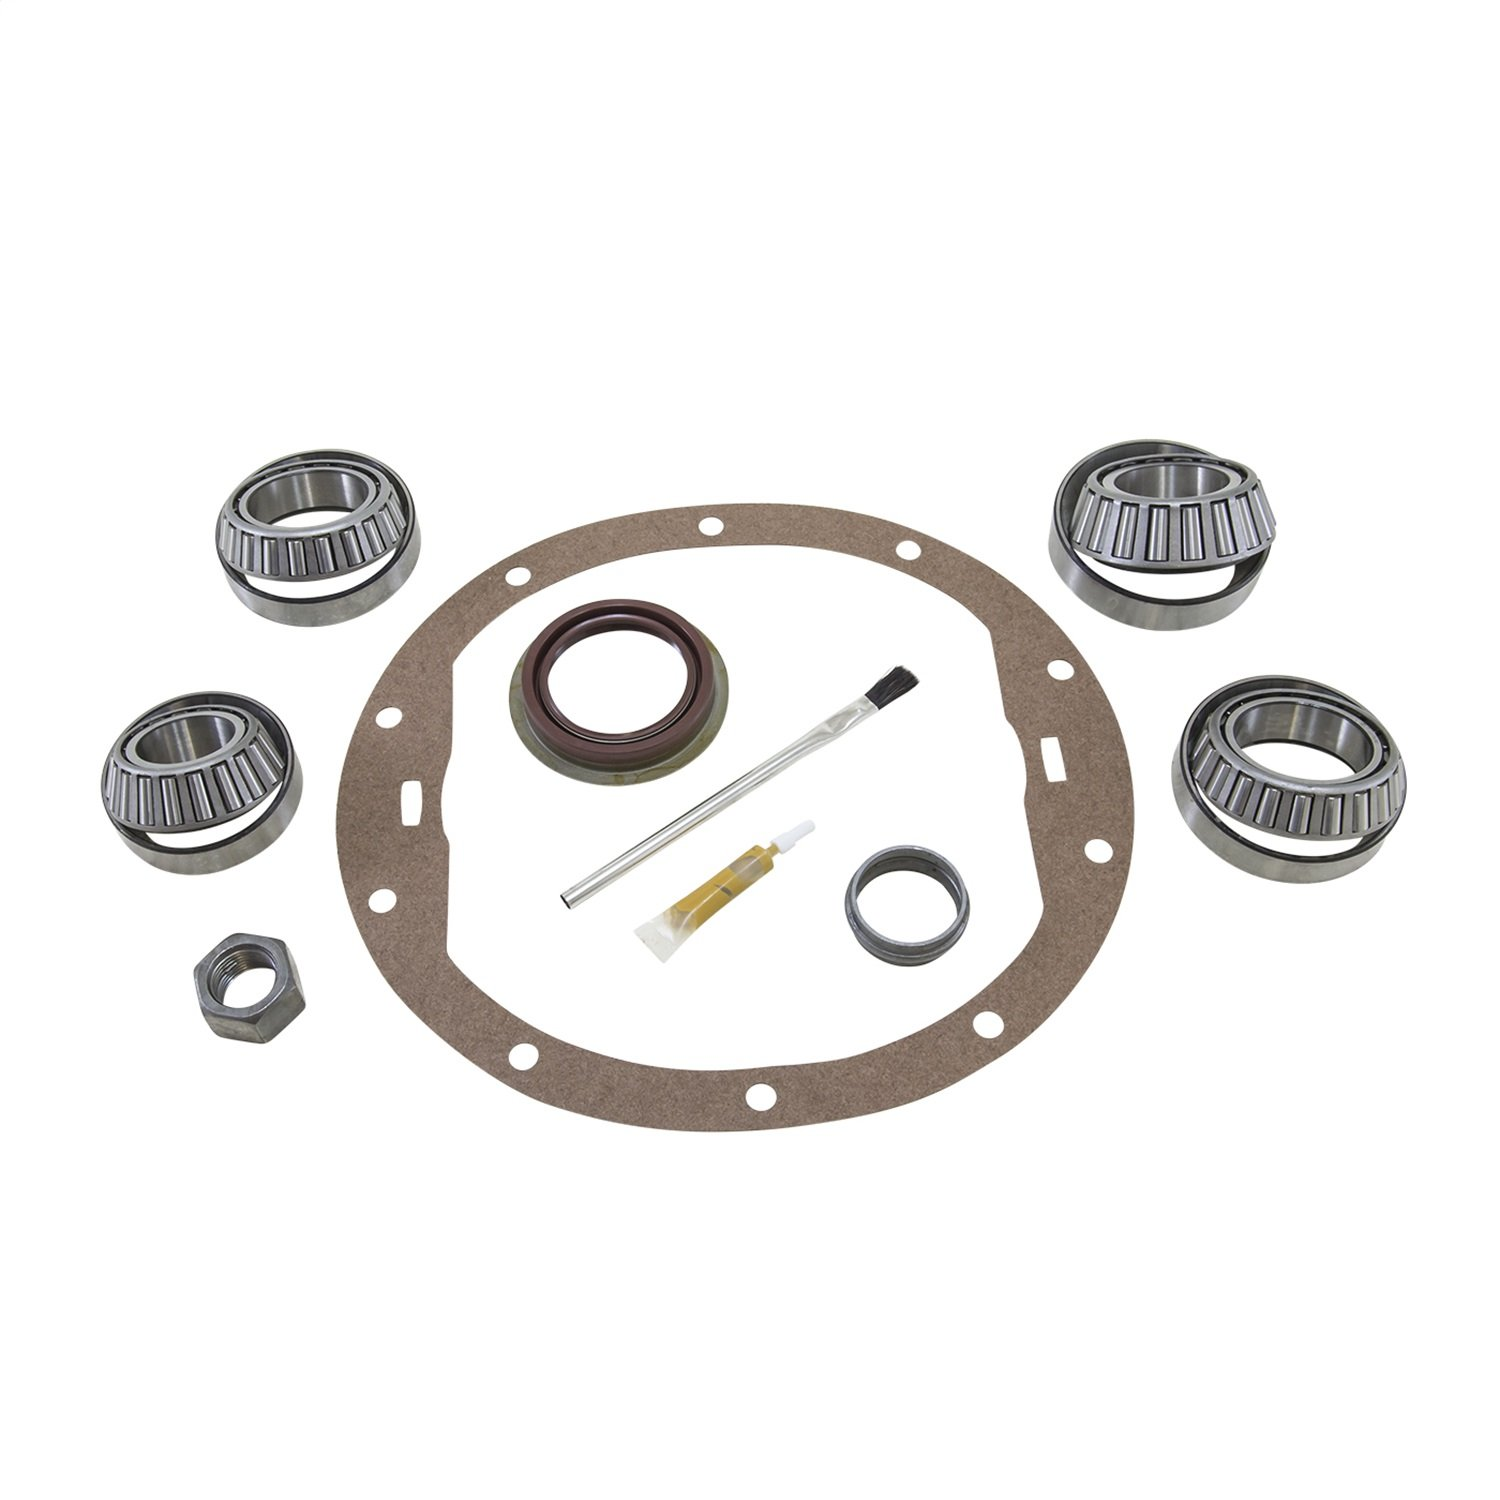 Yukon Gear & Axle (BK GM8.2) Bearing Installation Kit for GM 8.2 Differential